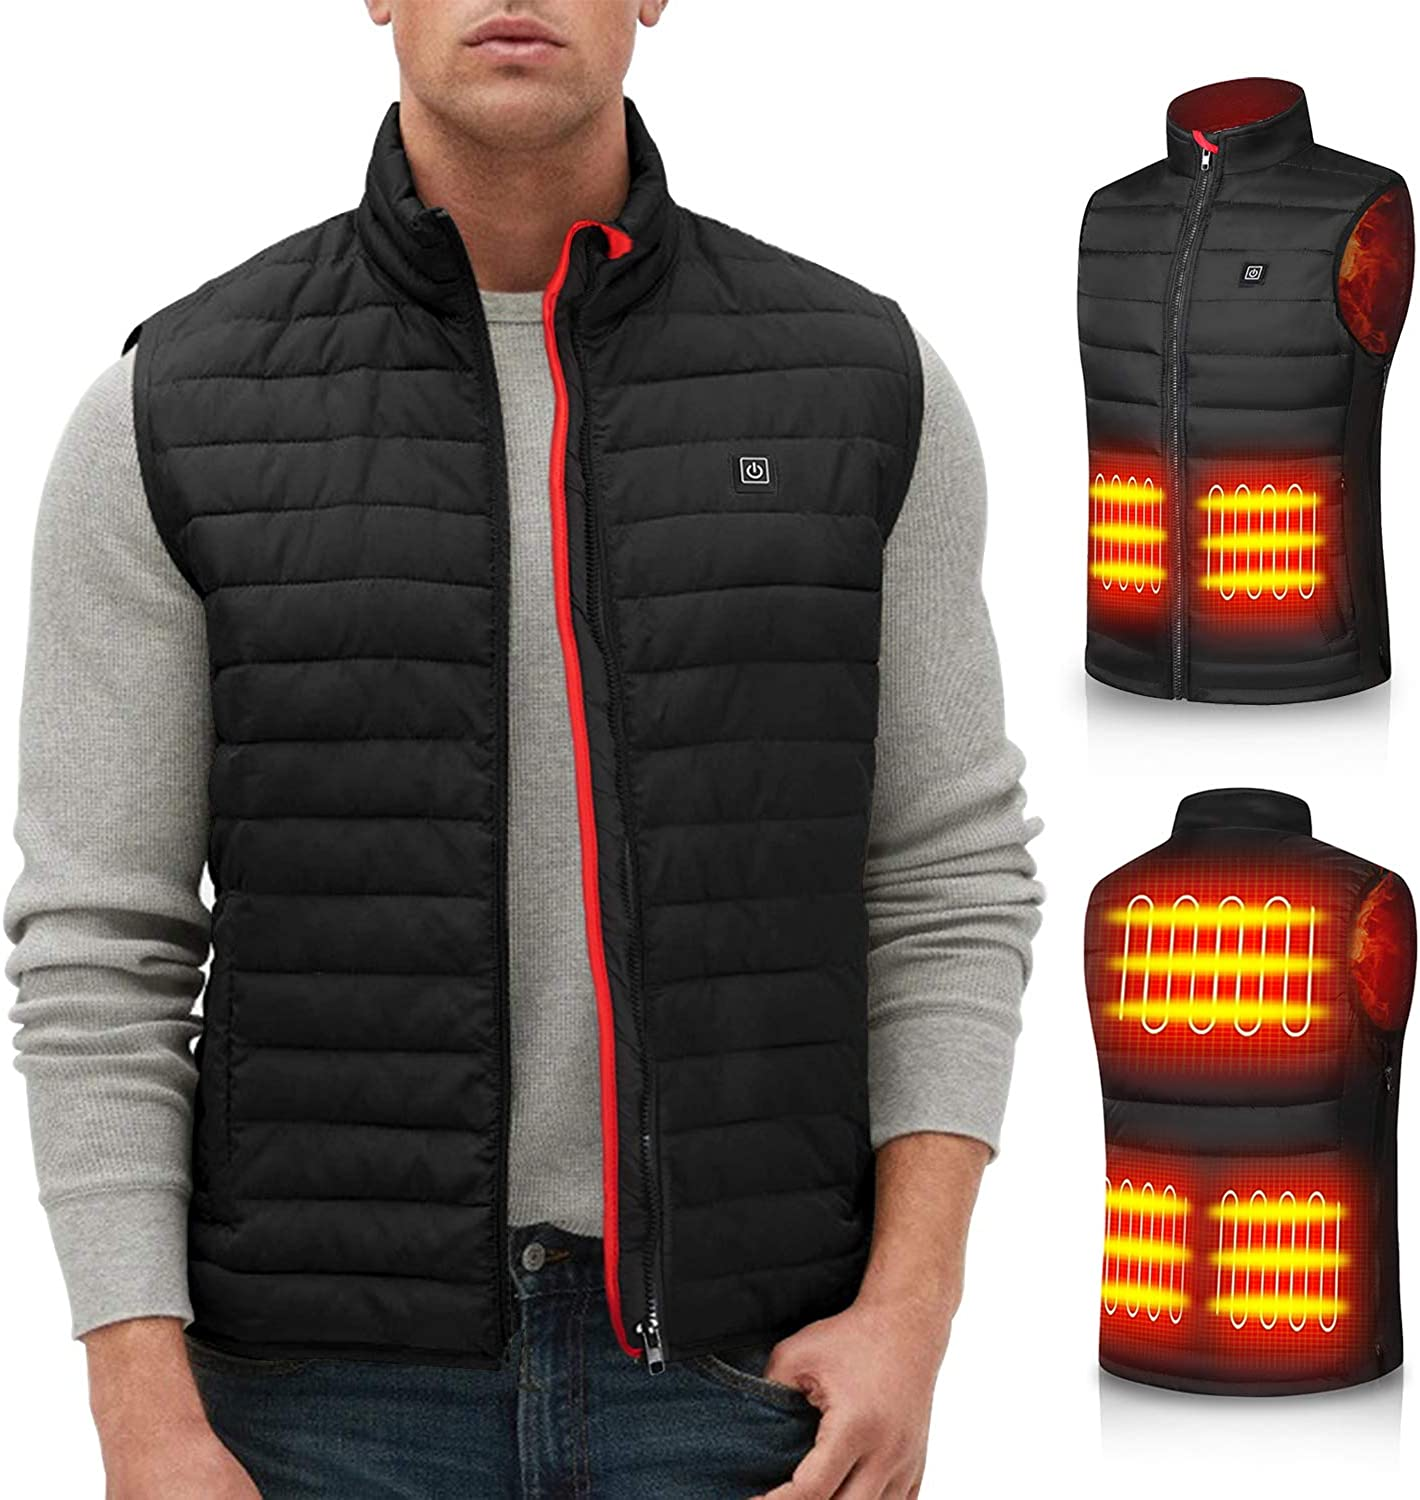 Heated Vest for Men Women Max 88% OFF Heating battery Winter At the price of surprise jacket coat